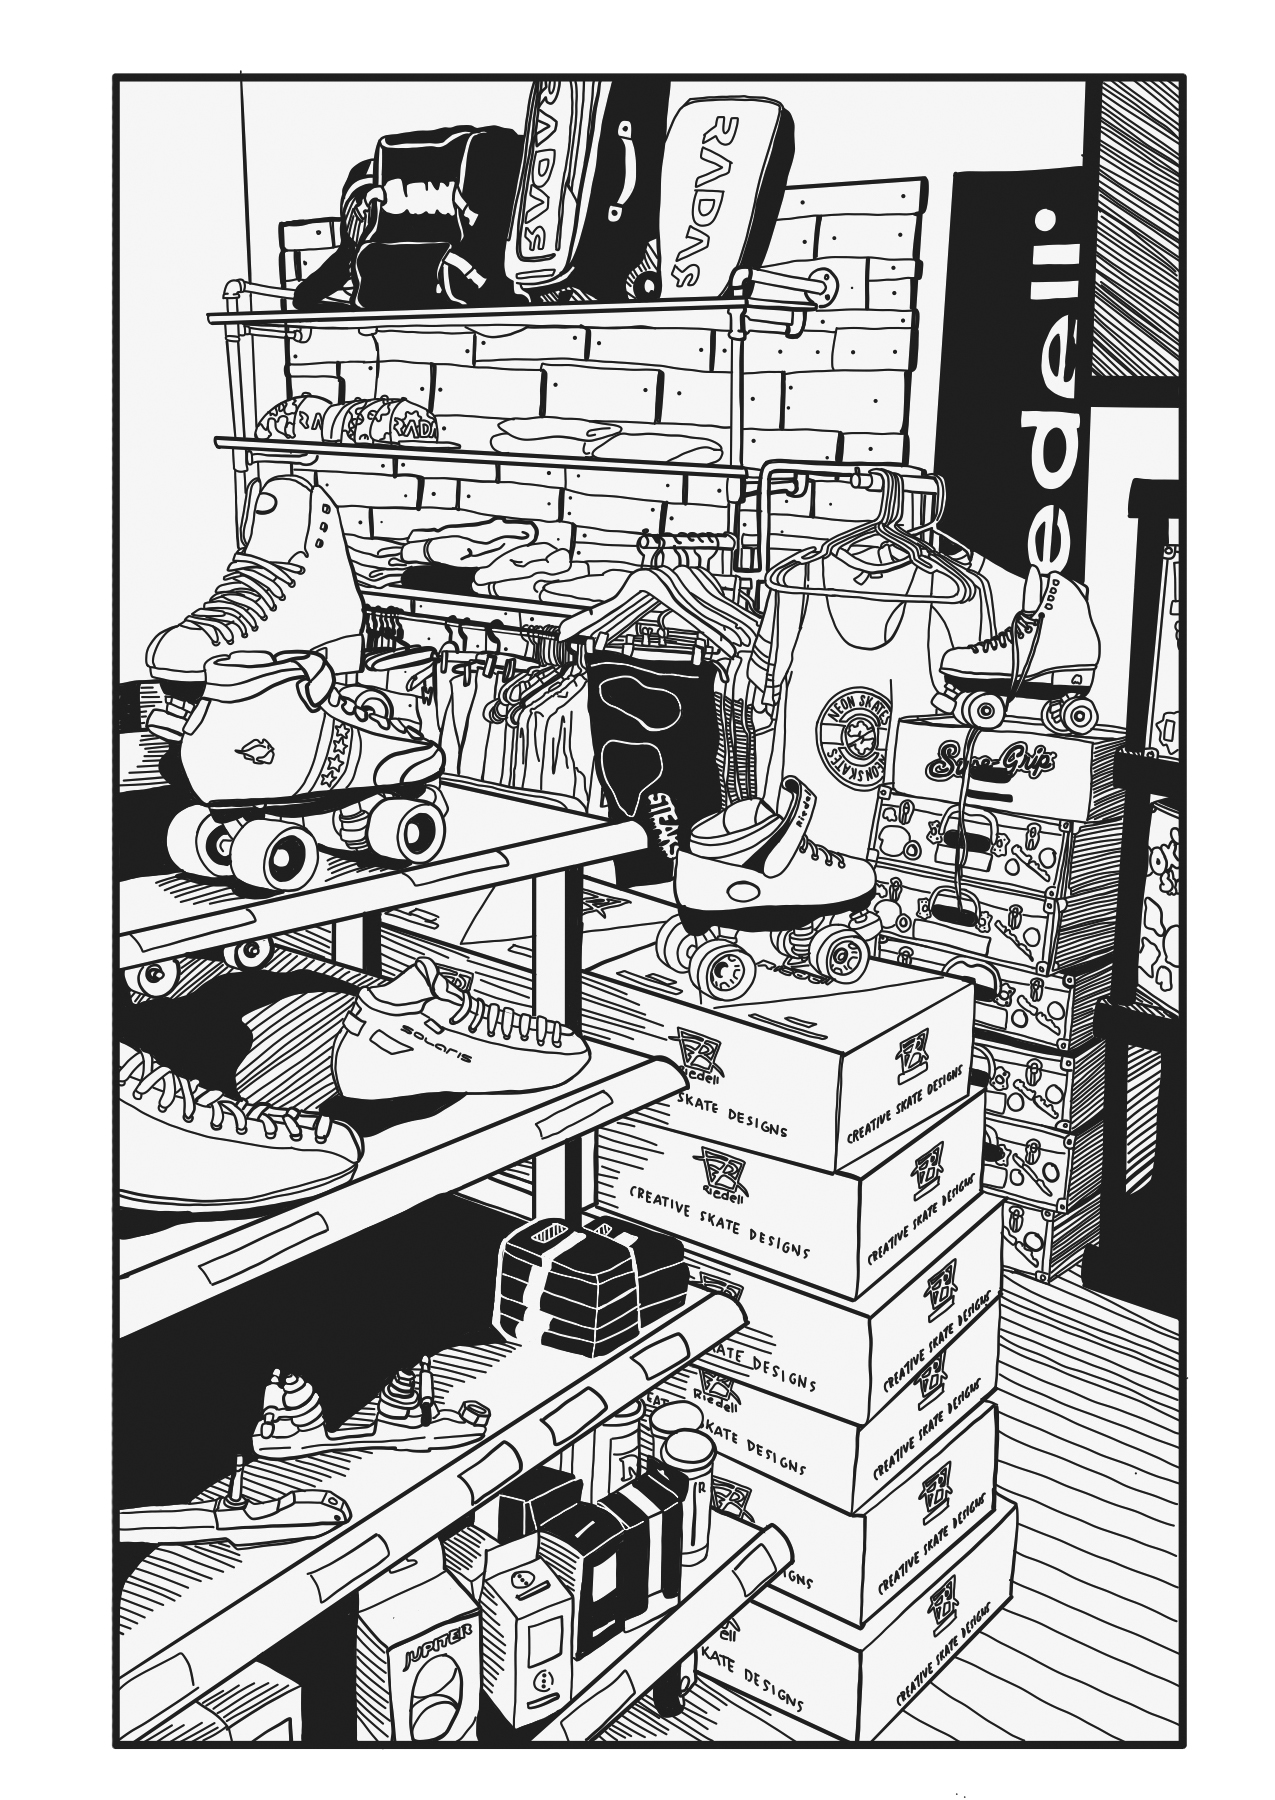 Illustration of the interior of a roller skate shop